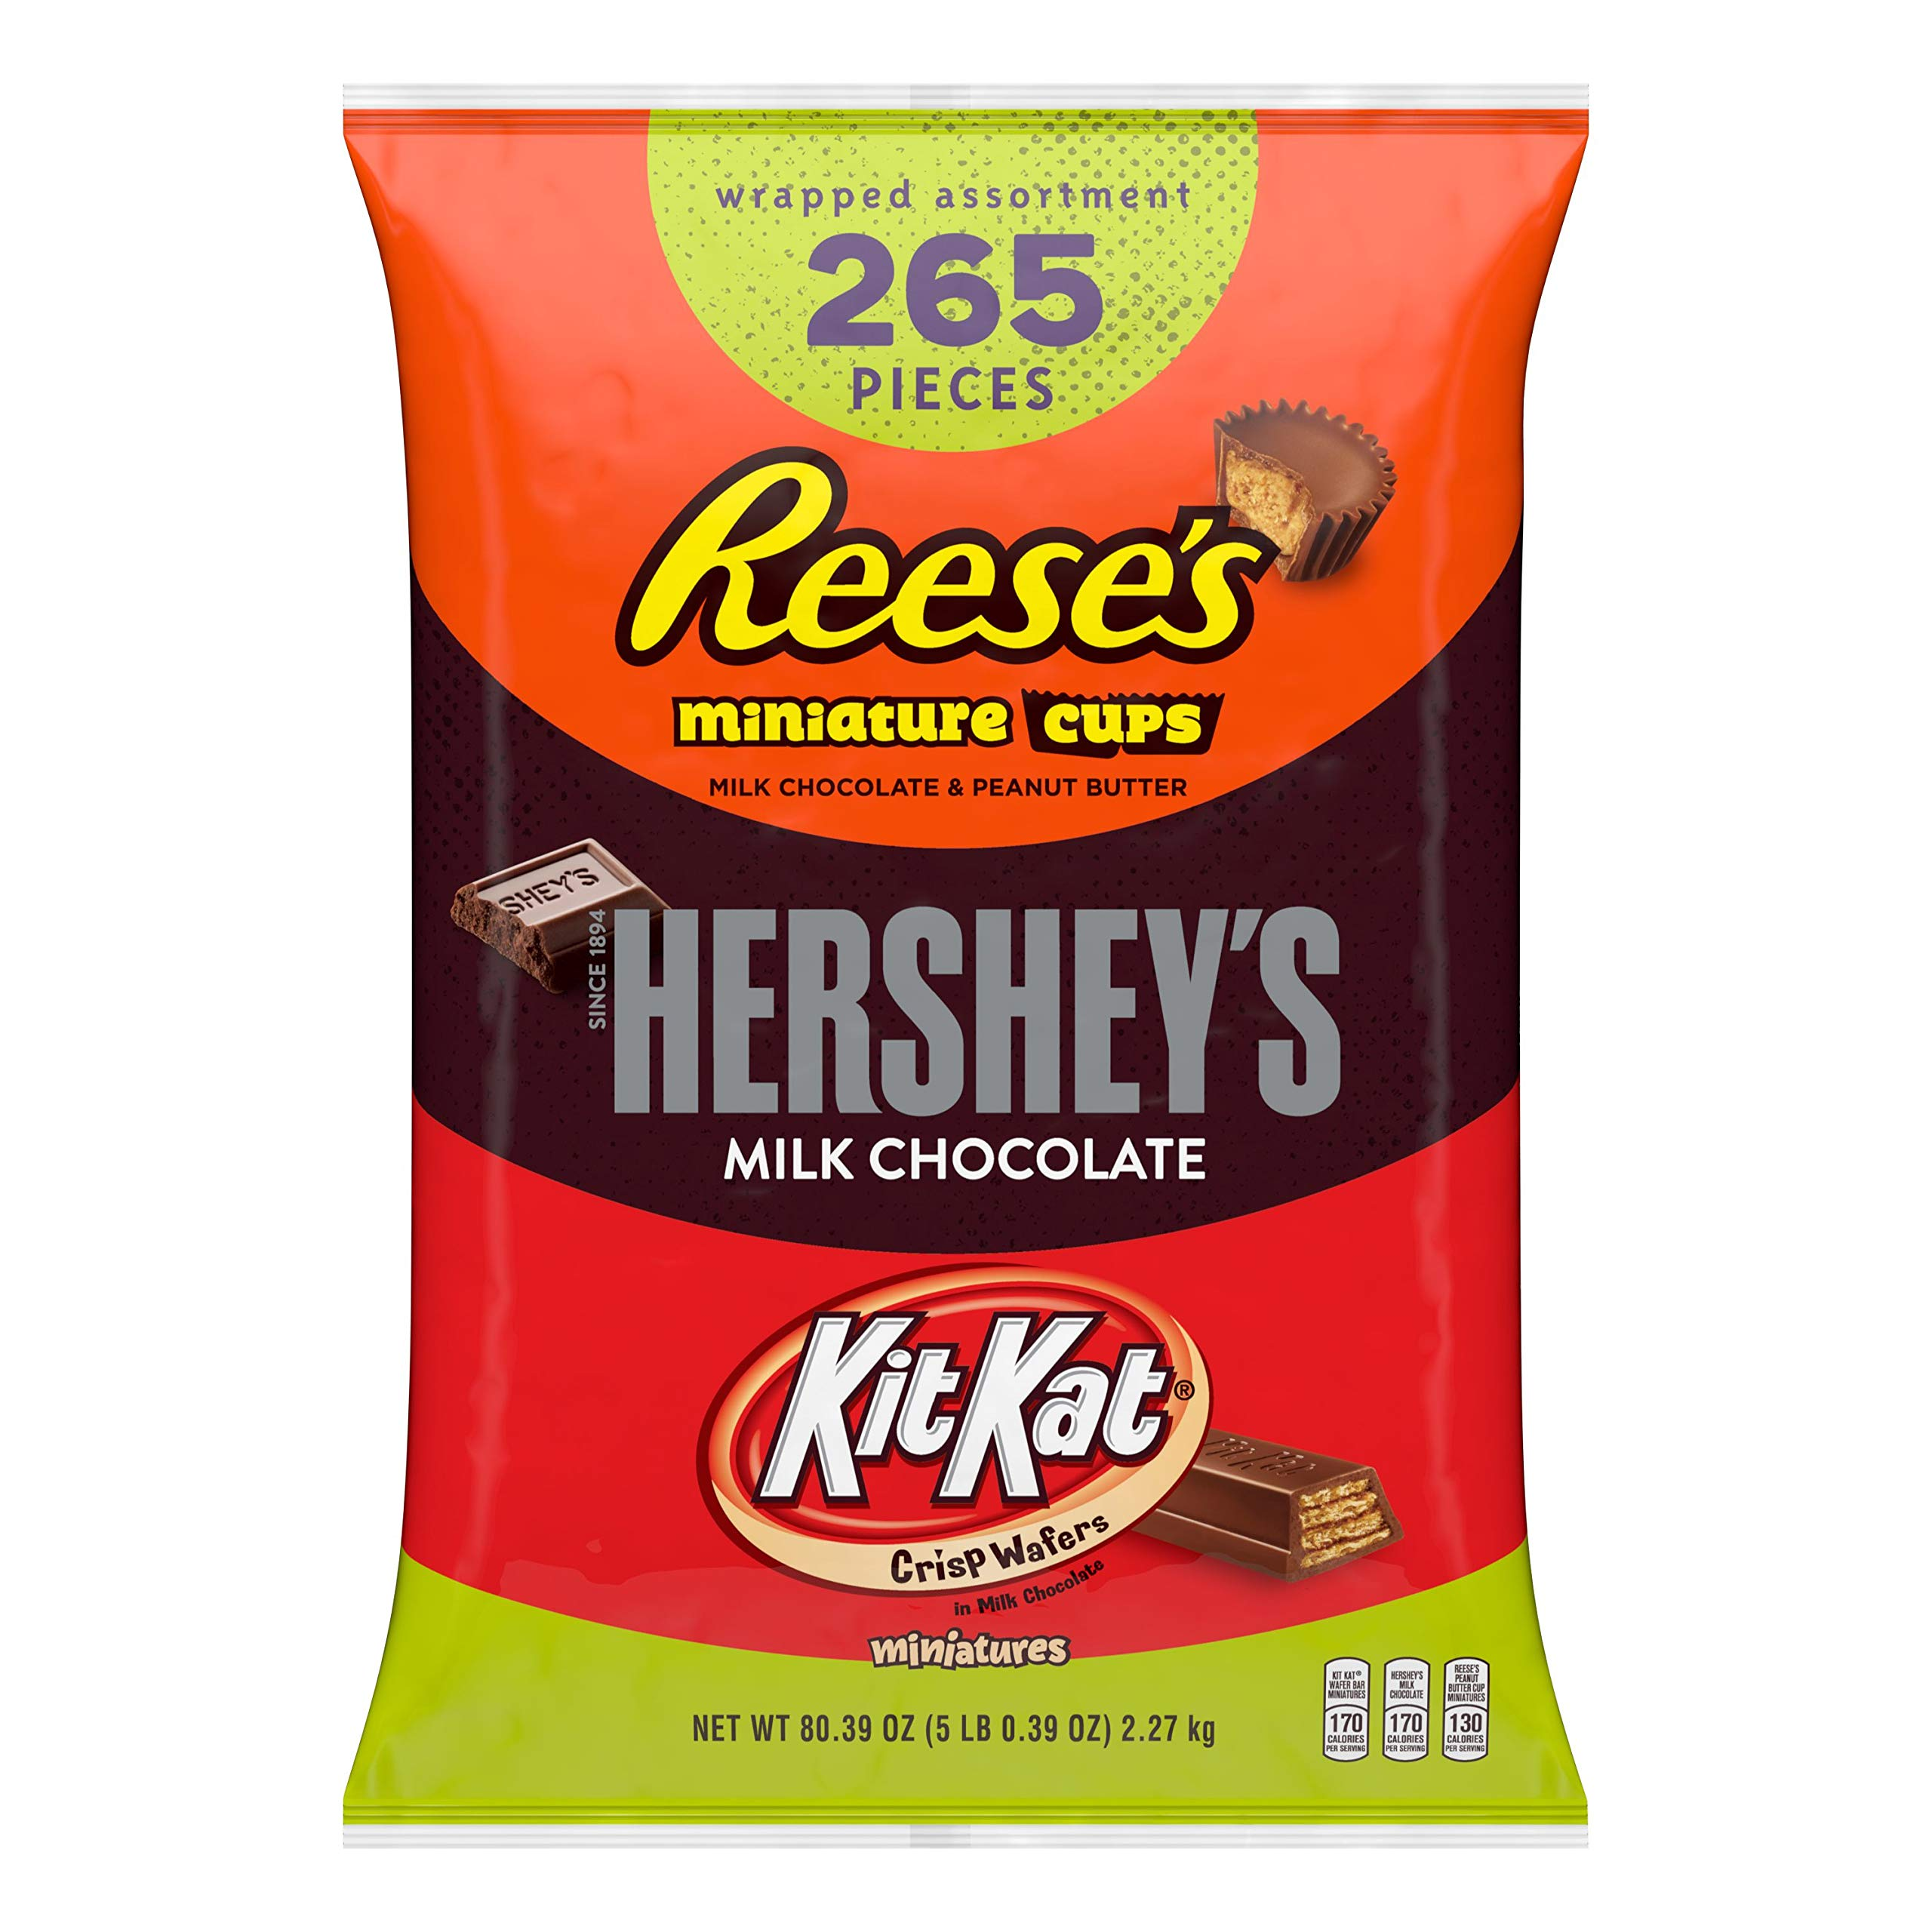 Reese's, Hershey's and KIT KAT Assorted Milk Chocolate Miniatures Candy